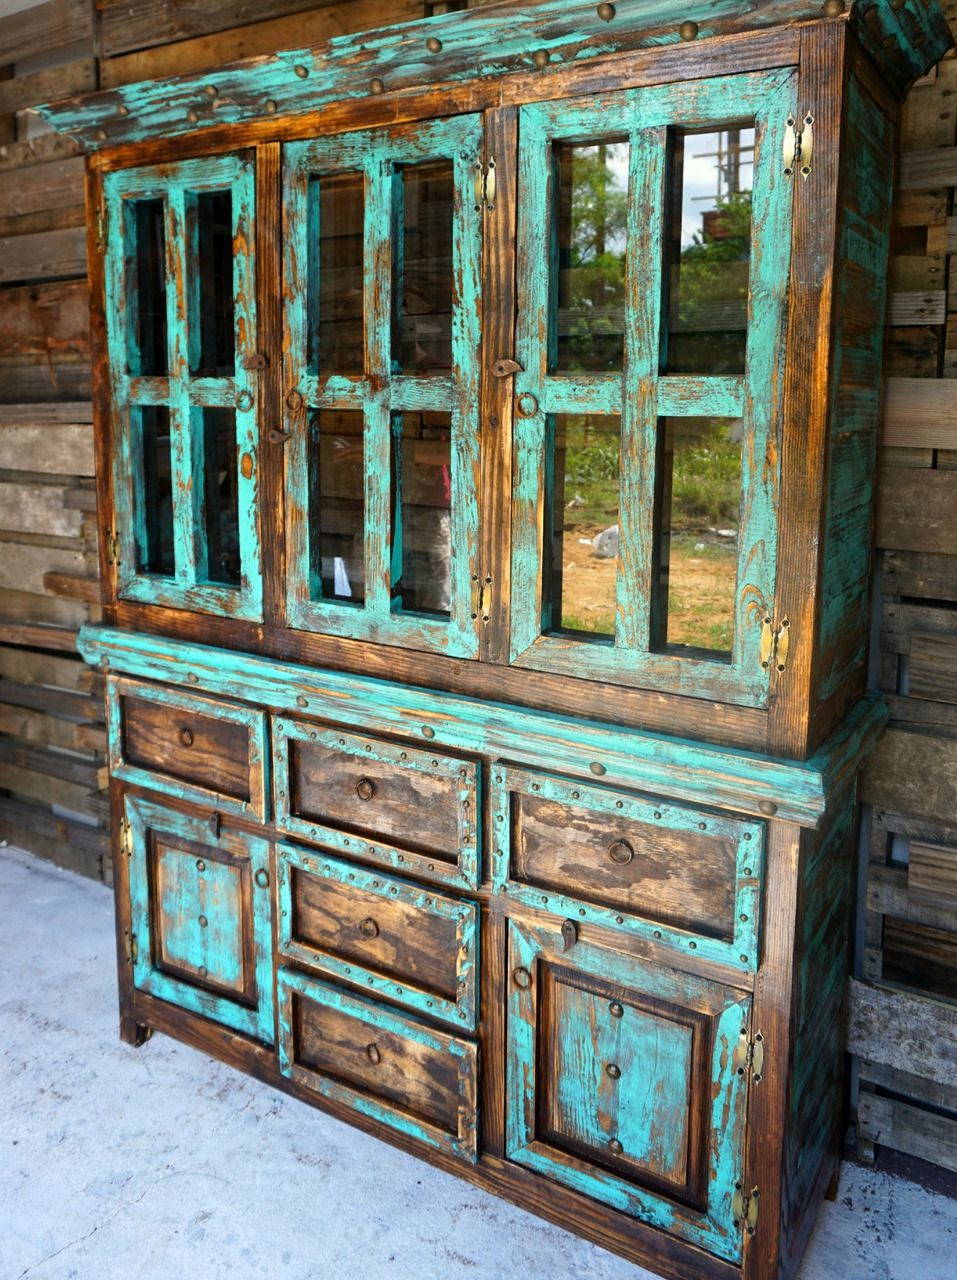 San antonio rustic hutch rustic hutch rustic furniture Pictures of rustic furniture